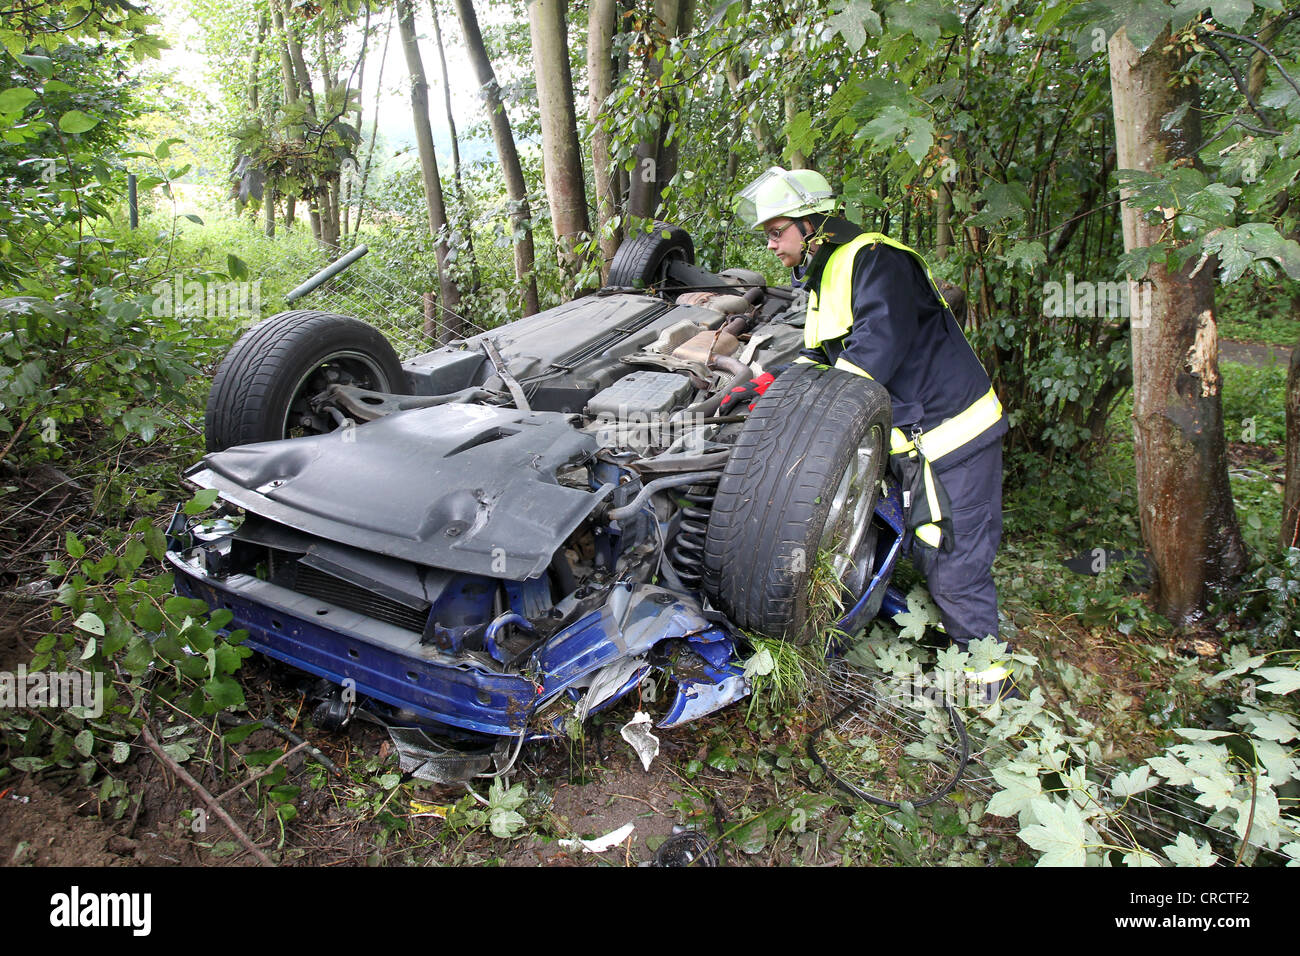 Firefighter attending a car wreck after an accident on the A48 Autobahn, motorway, Hoehr-Grenzhausen, Rhineland - Stock Image